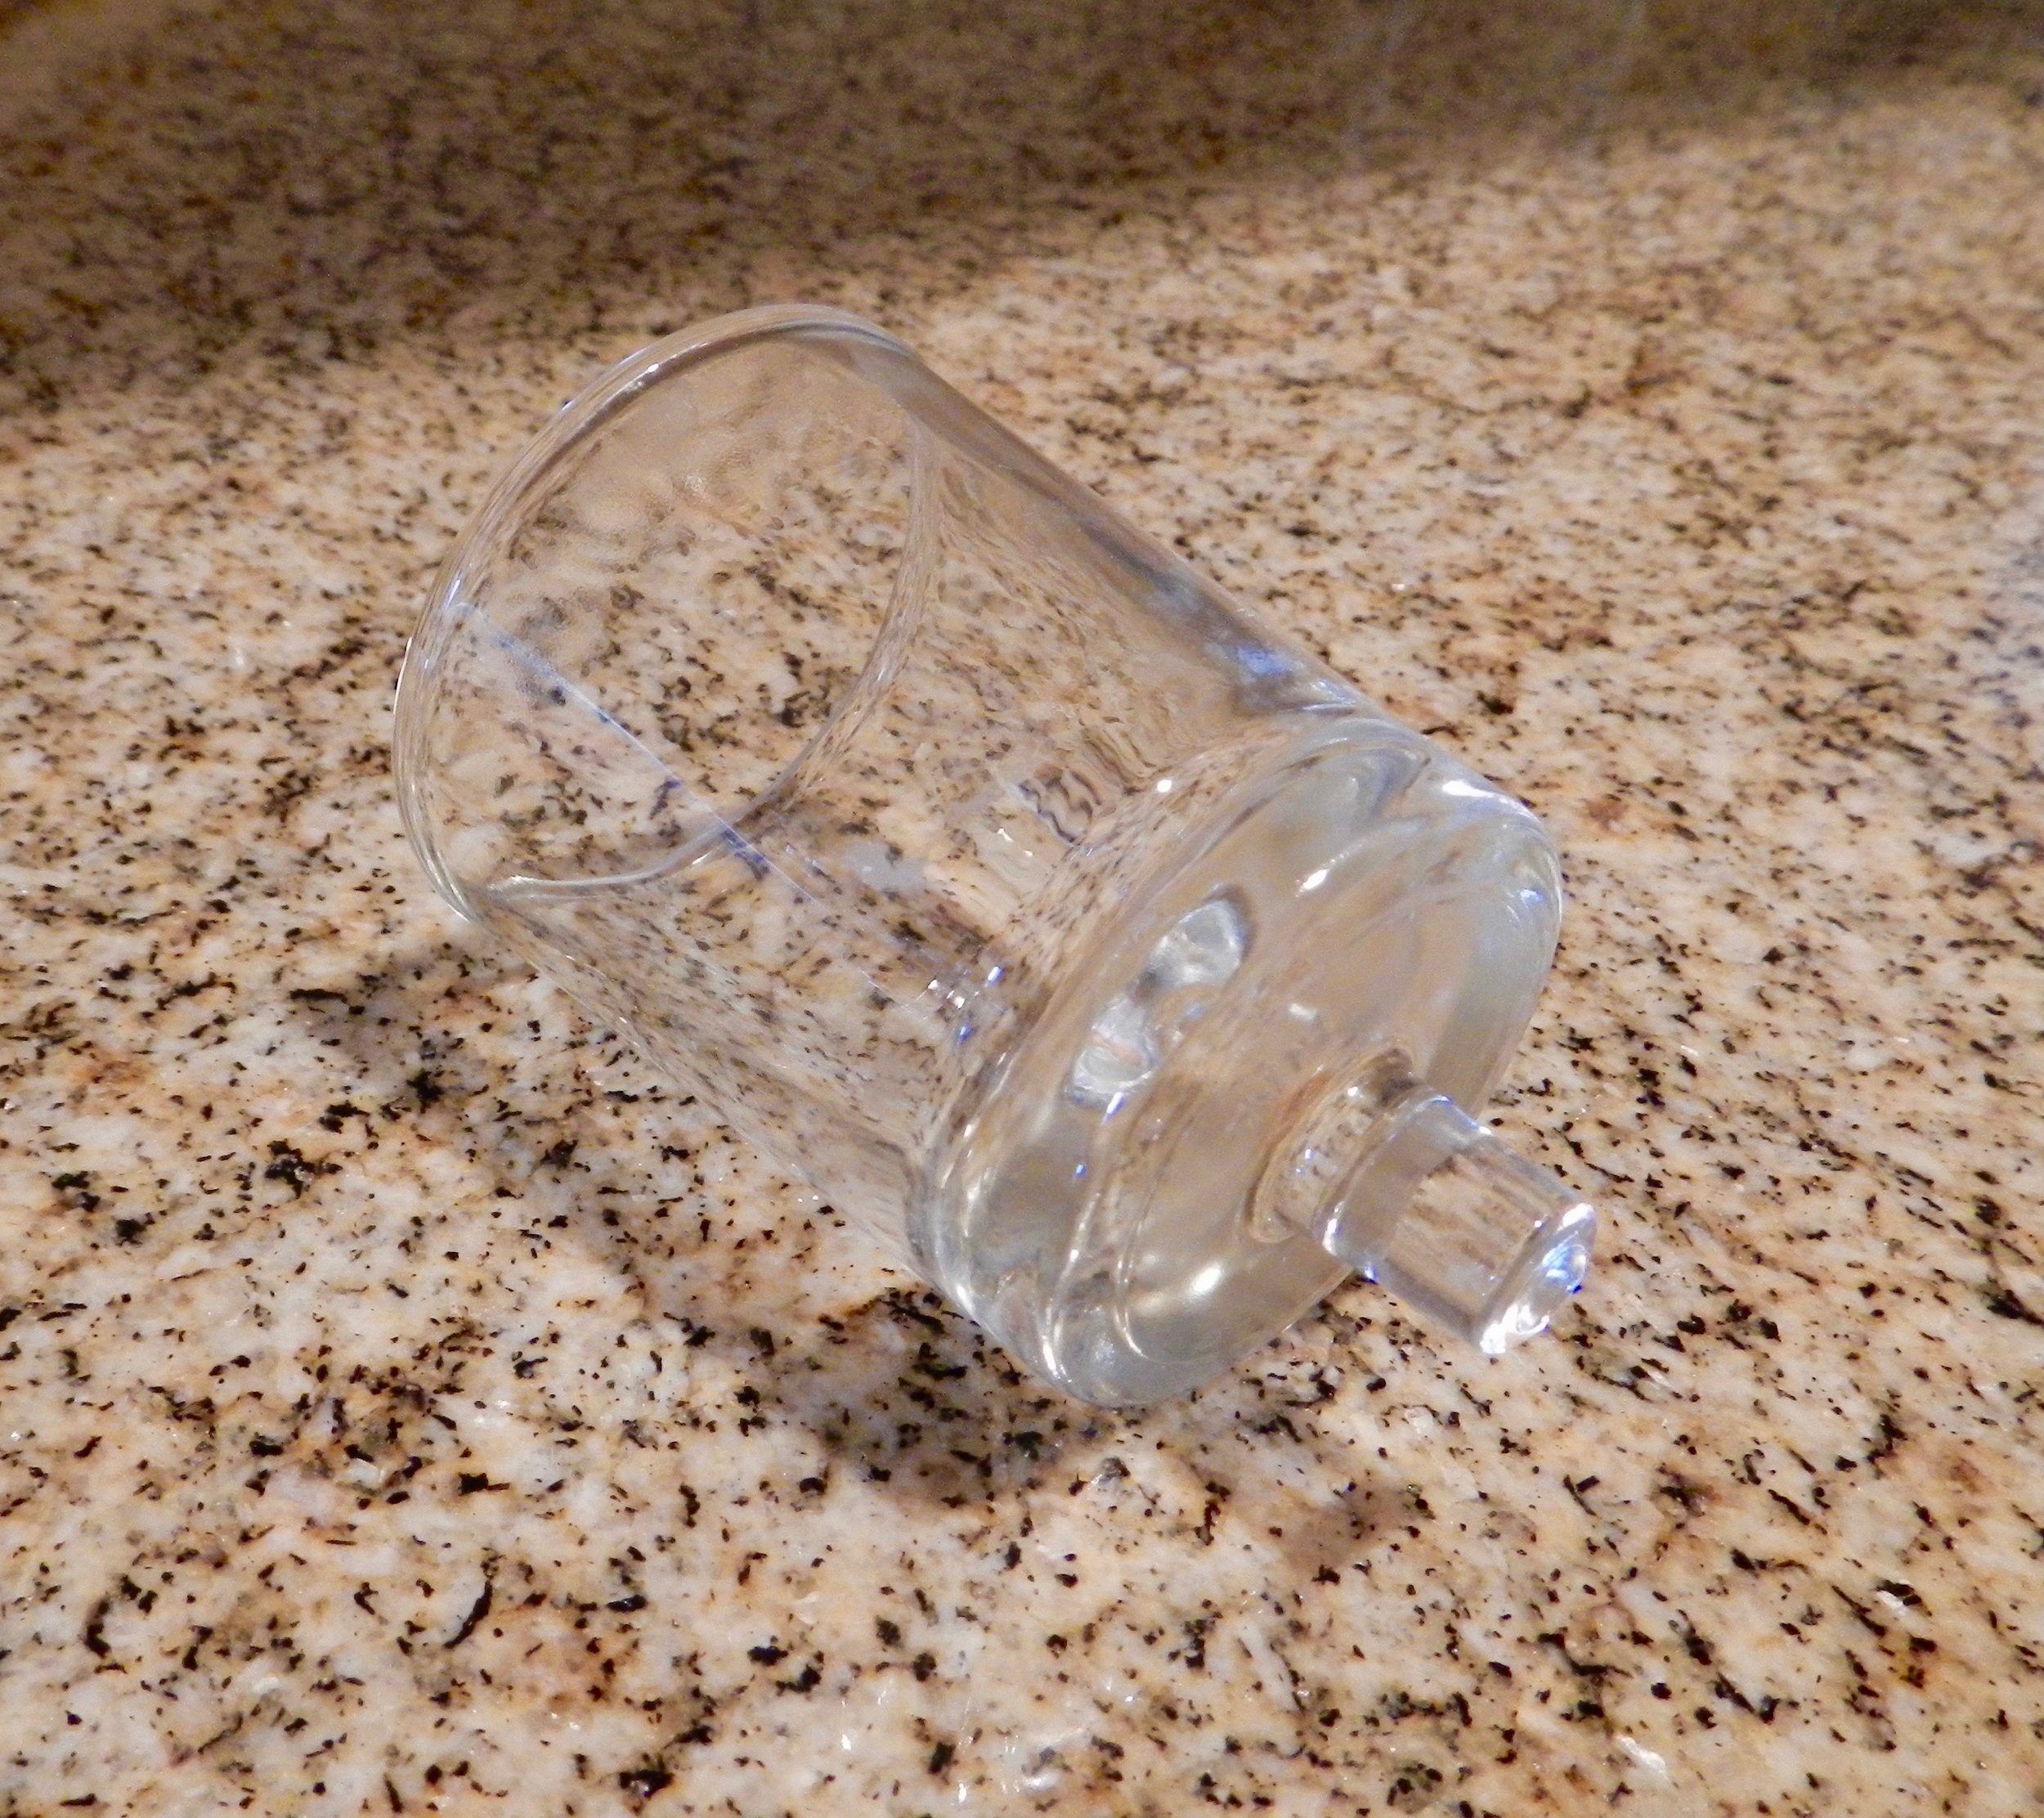 (Shown: Glass cup for oil or candle. They come in different widths and nub sizes.)